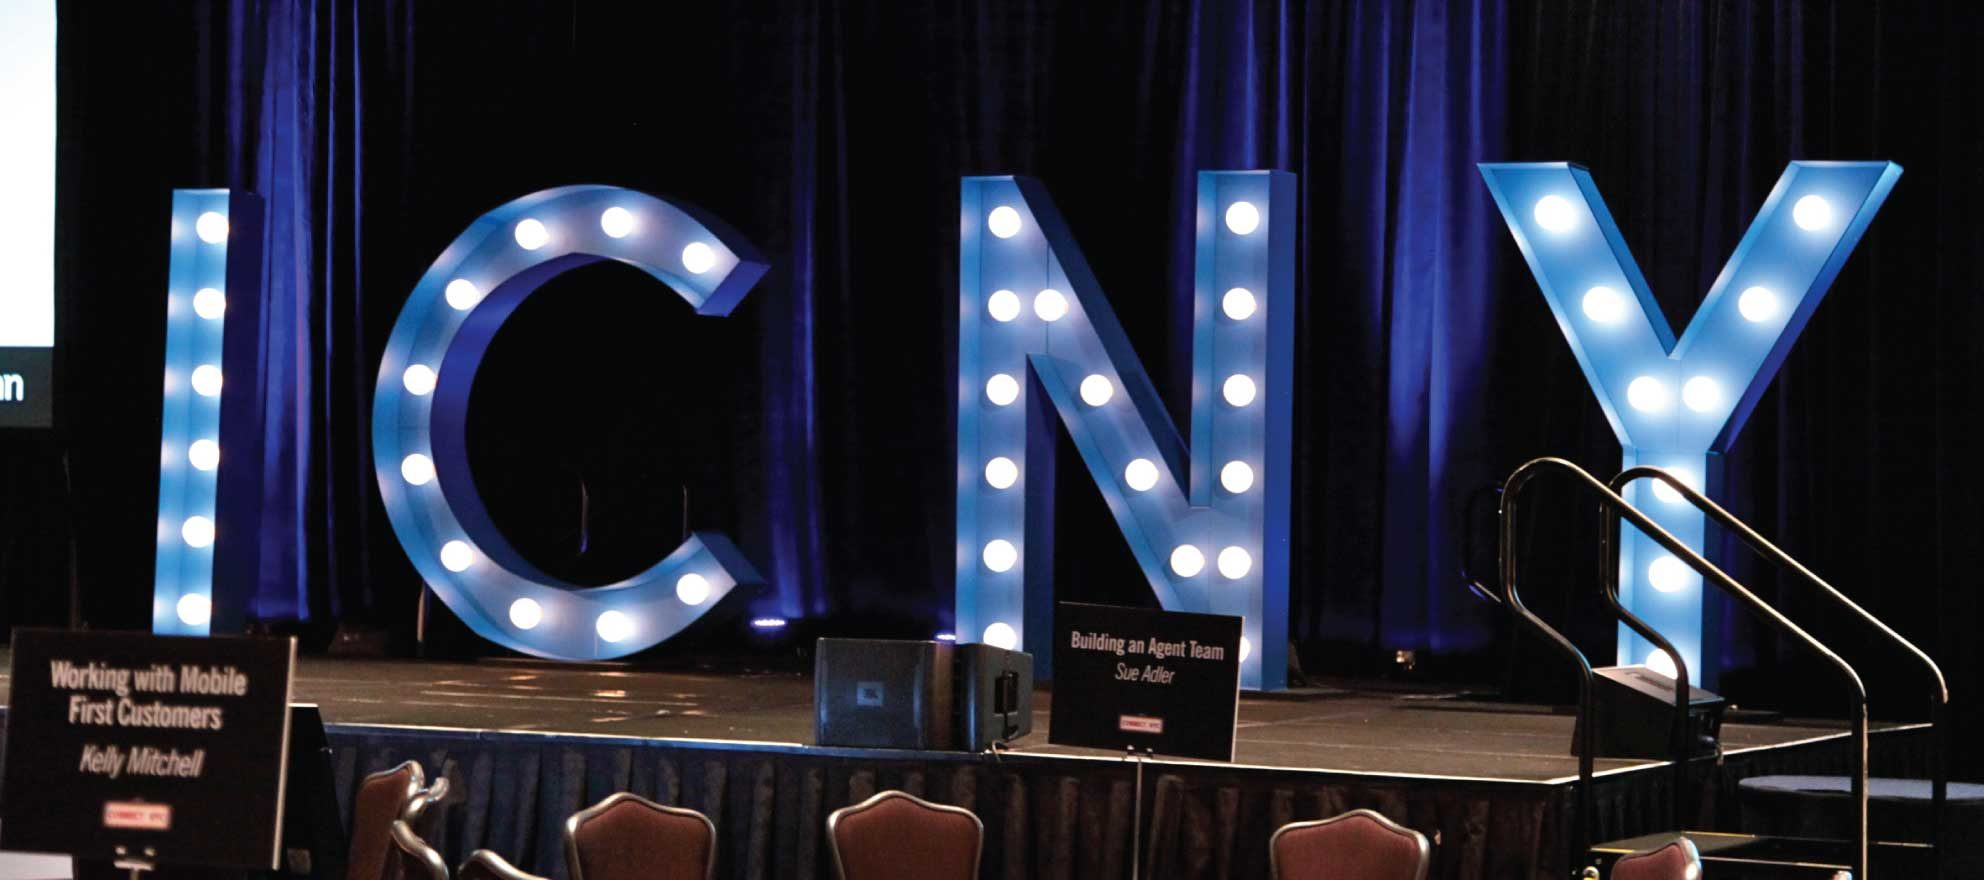 Top 5 takeaways from Real Estate Connect NYC